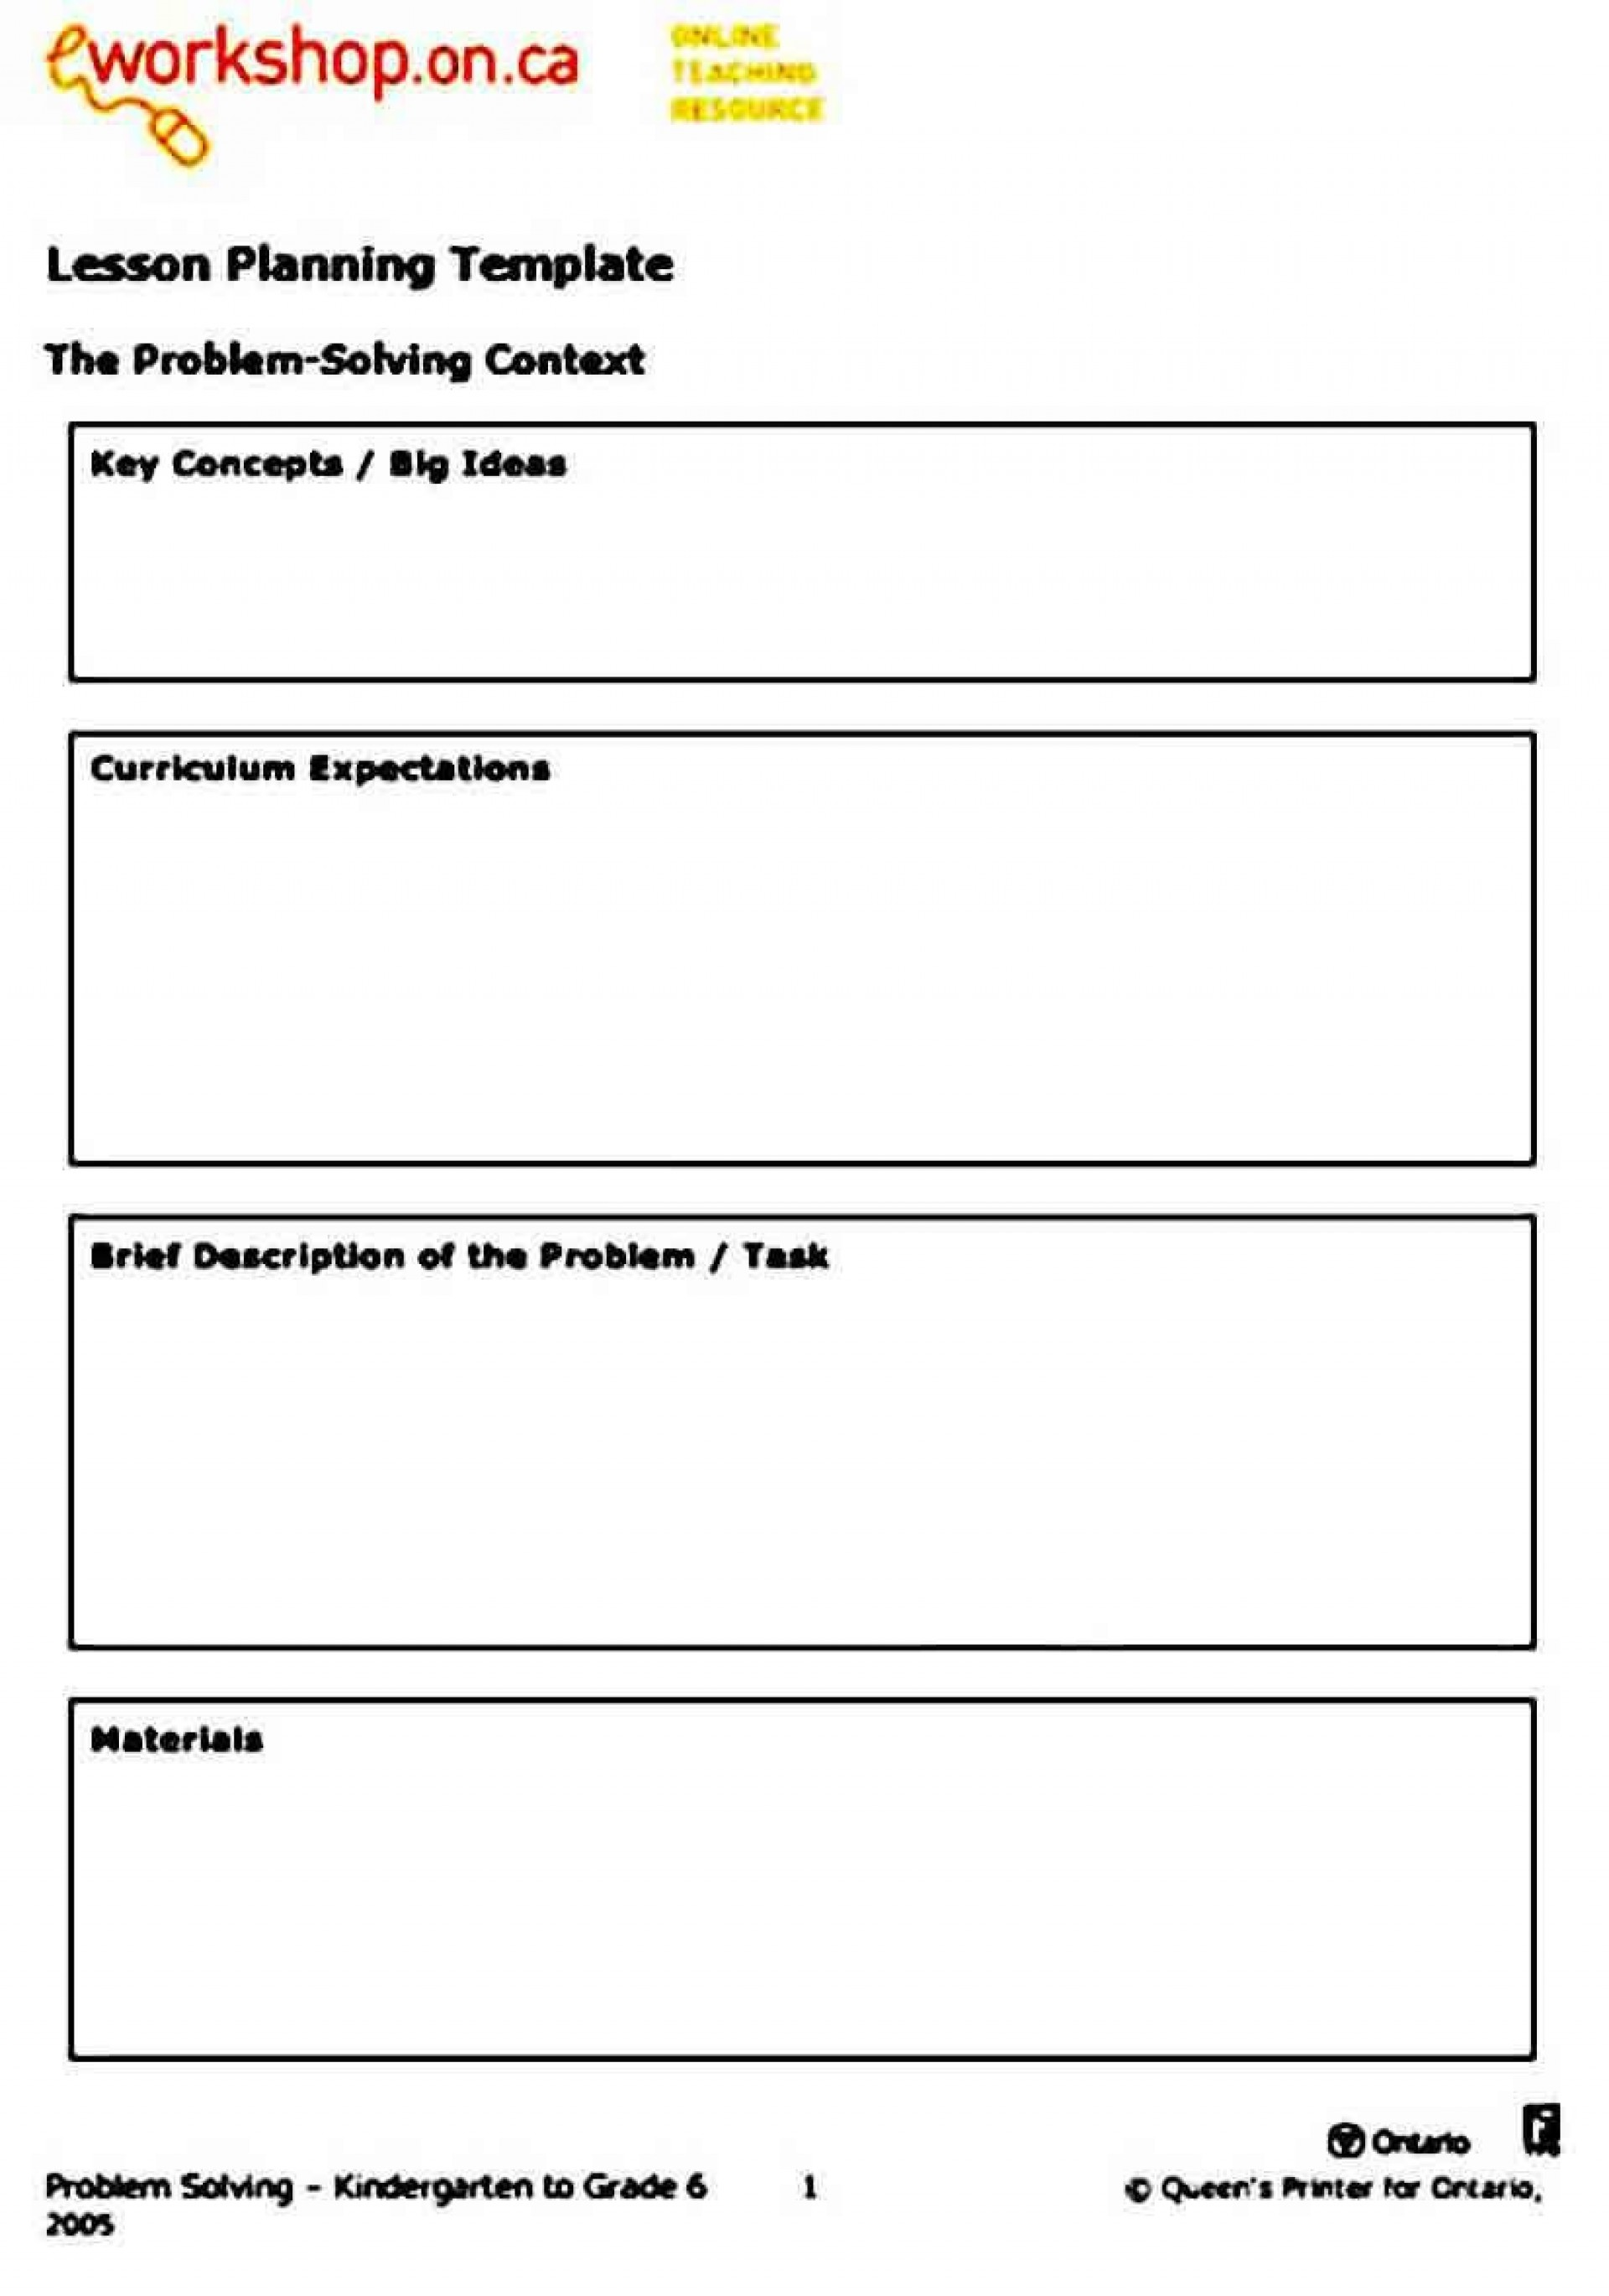 008 Outstanding Preschool Lesson Plan Template Photo  Editable With Objective Pre-k Printable1920